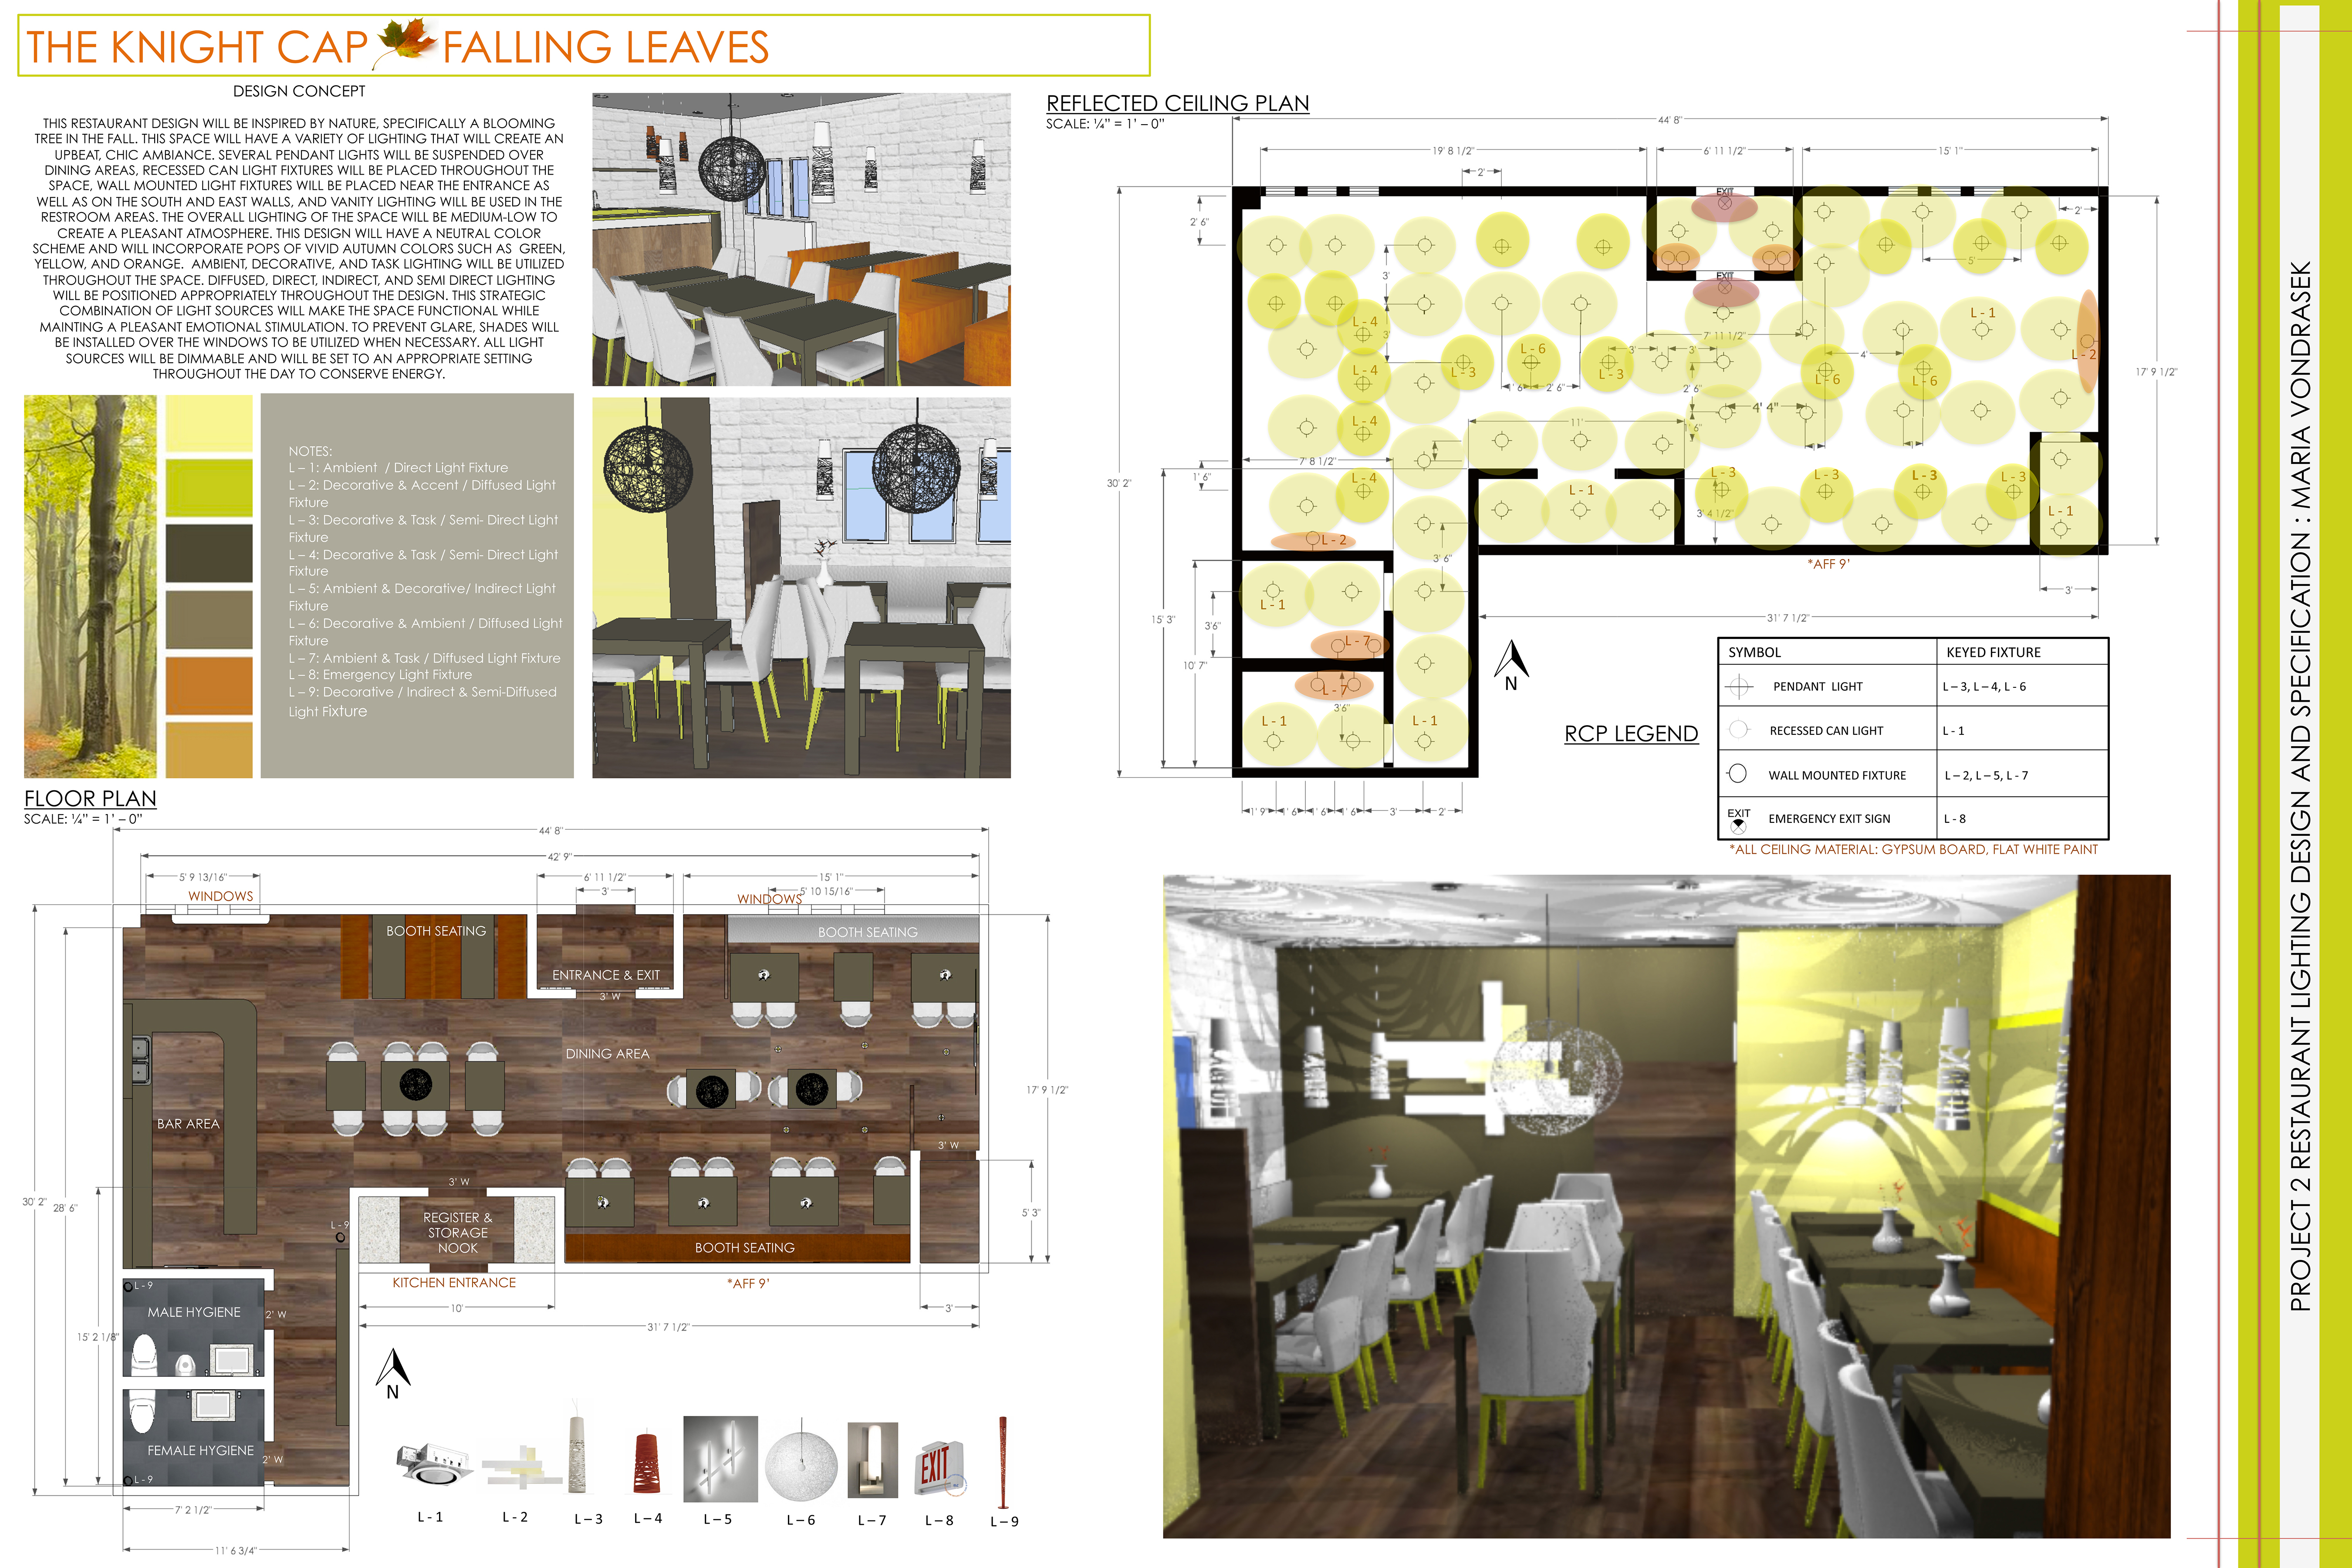 dissertation proposal interior design A design proposal template is an easiest way to make your own design proposal there are various samples of template designs found in the website that are affordable and accessible to have a design proposal template is made intended for offering design services needed by an individual or organization.